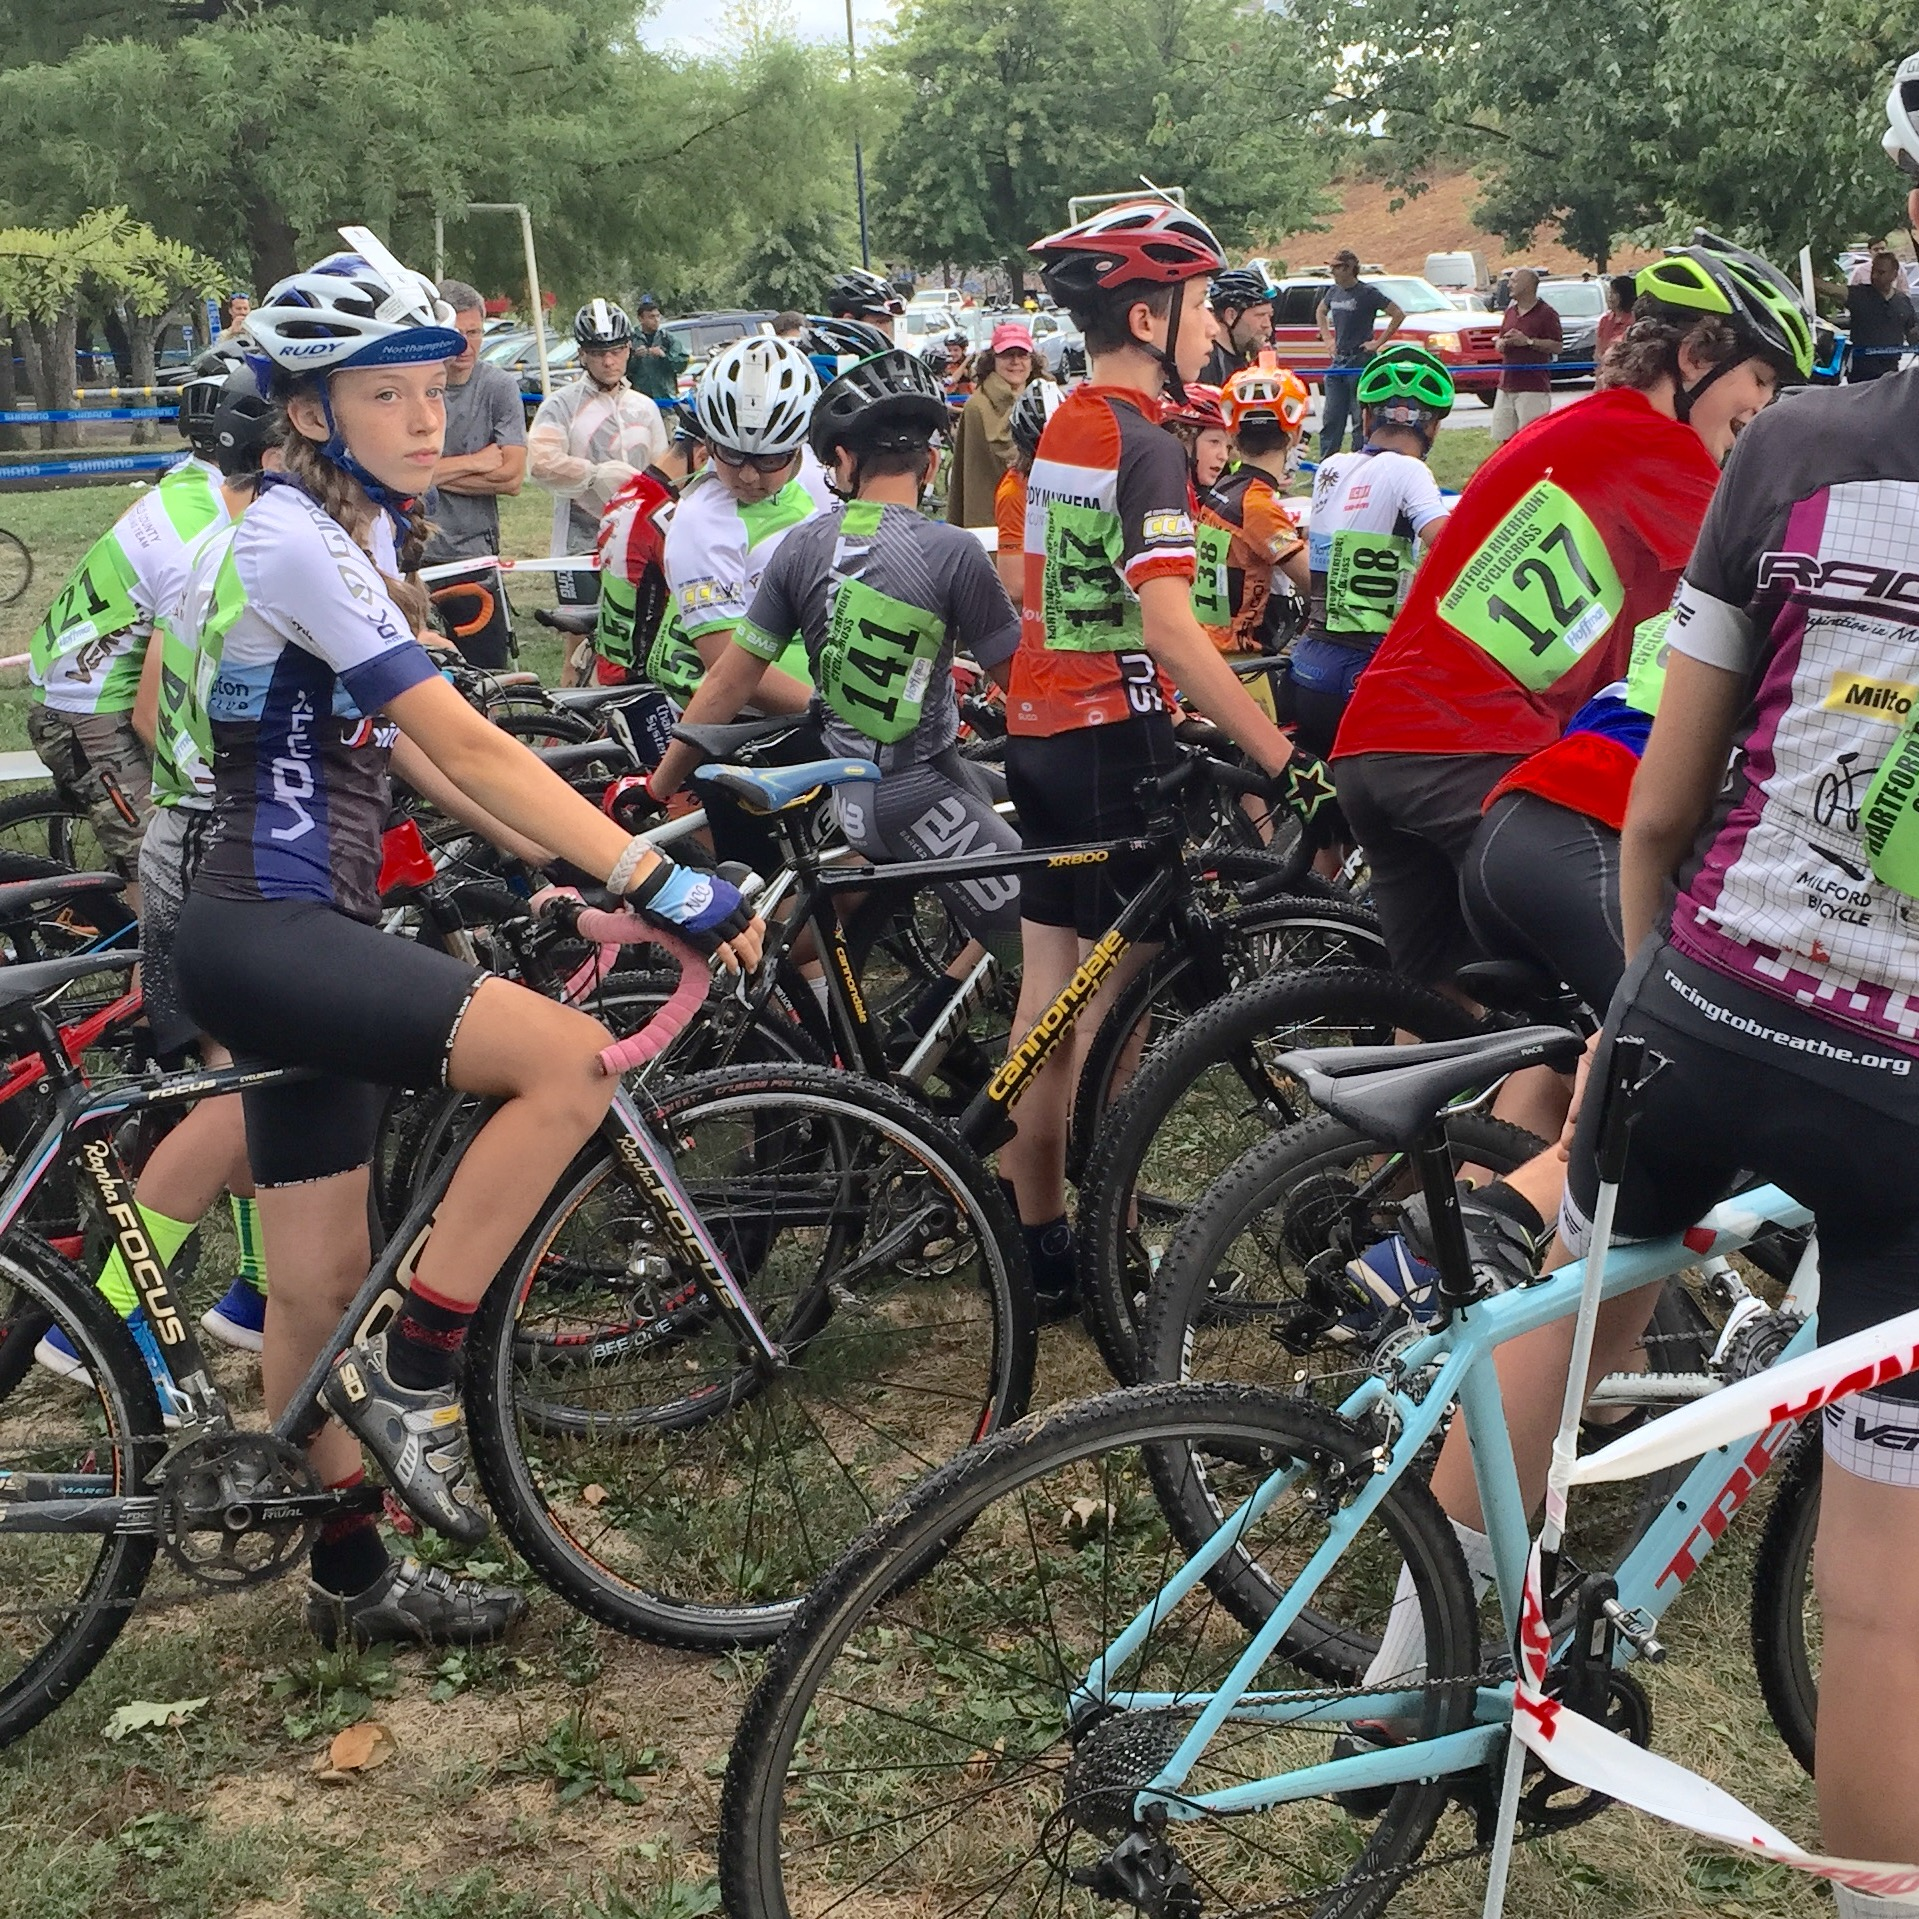 Mira Fowler ready at the start of the juniors 13-15 race at Silk City on Saturday. Photo by Jeff Fowler.